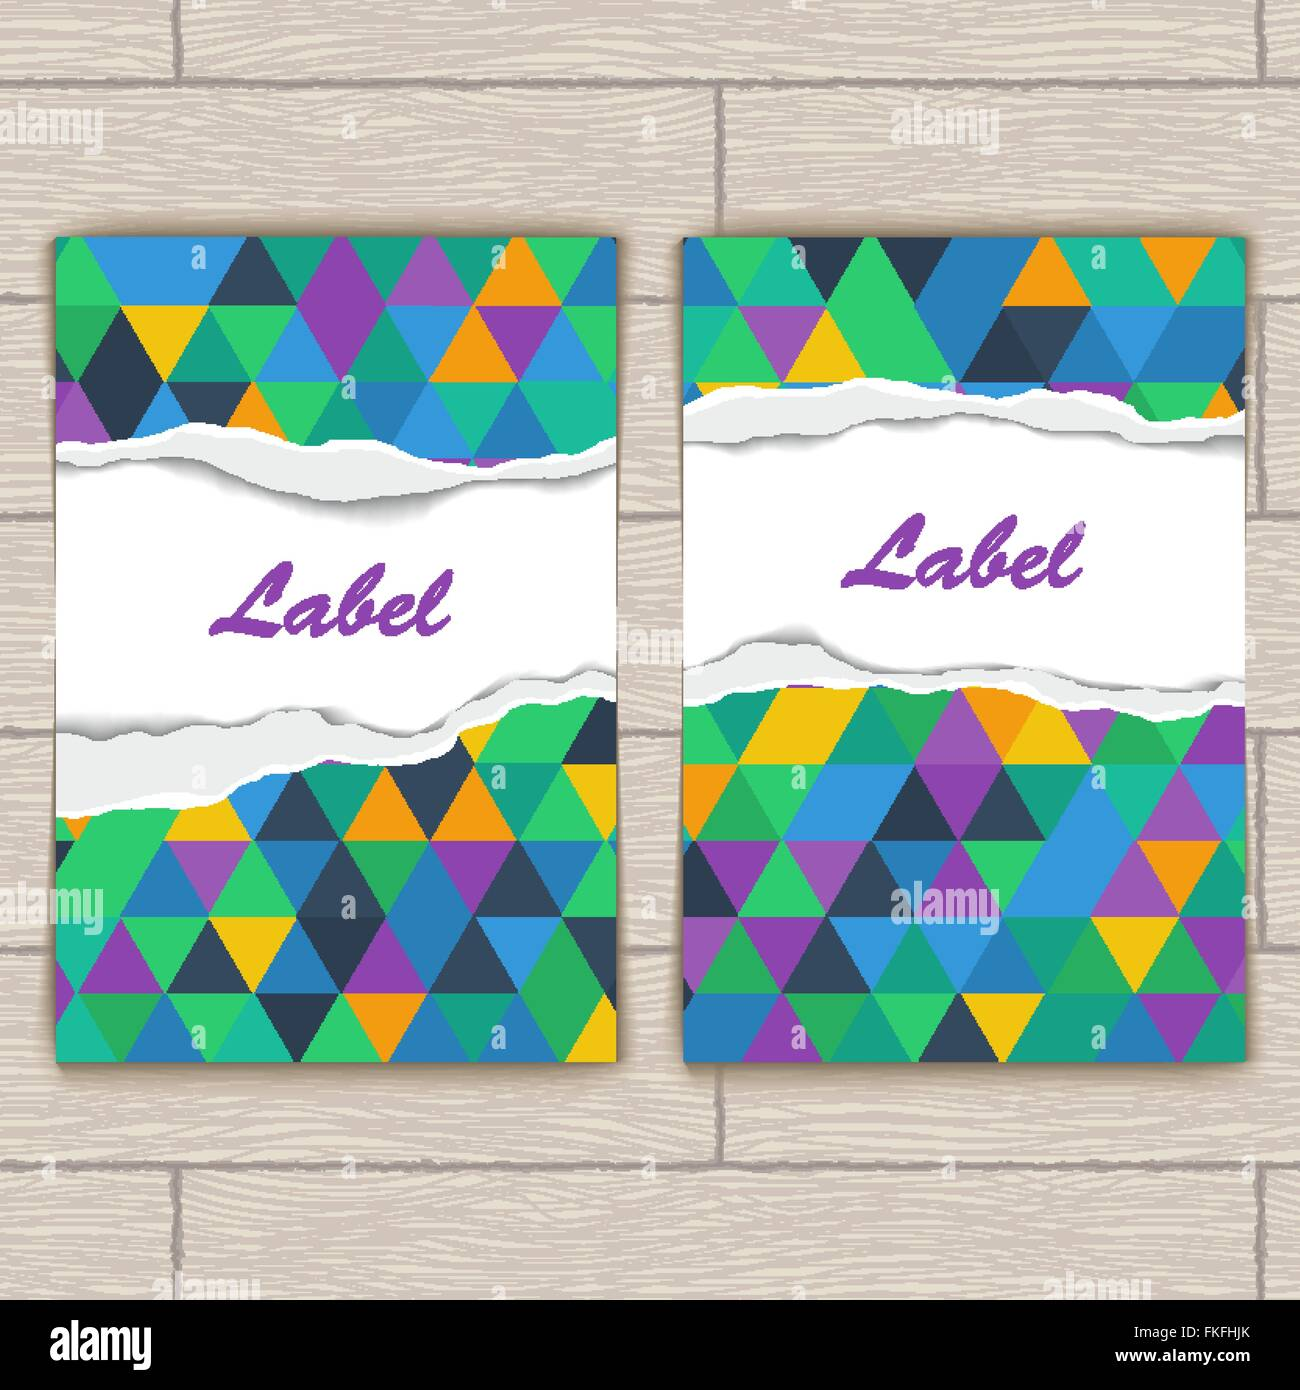 Card with Pattern of Colorful Lozenges - Stock Vector